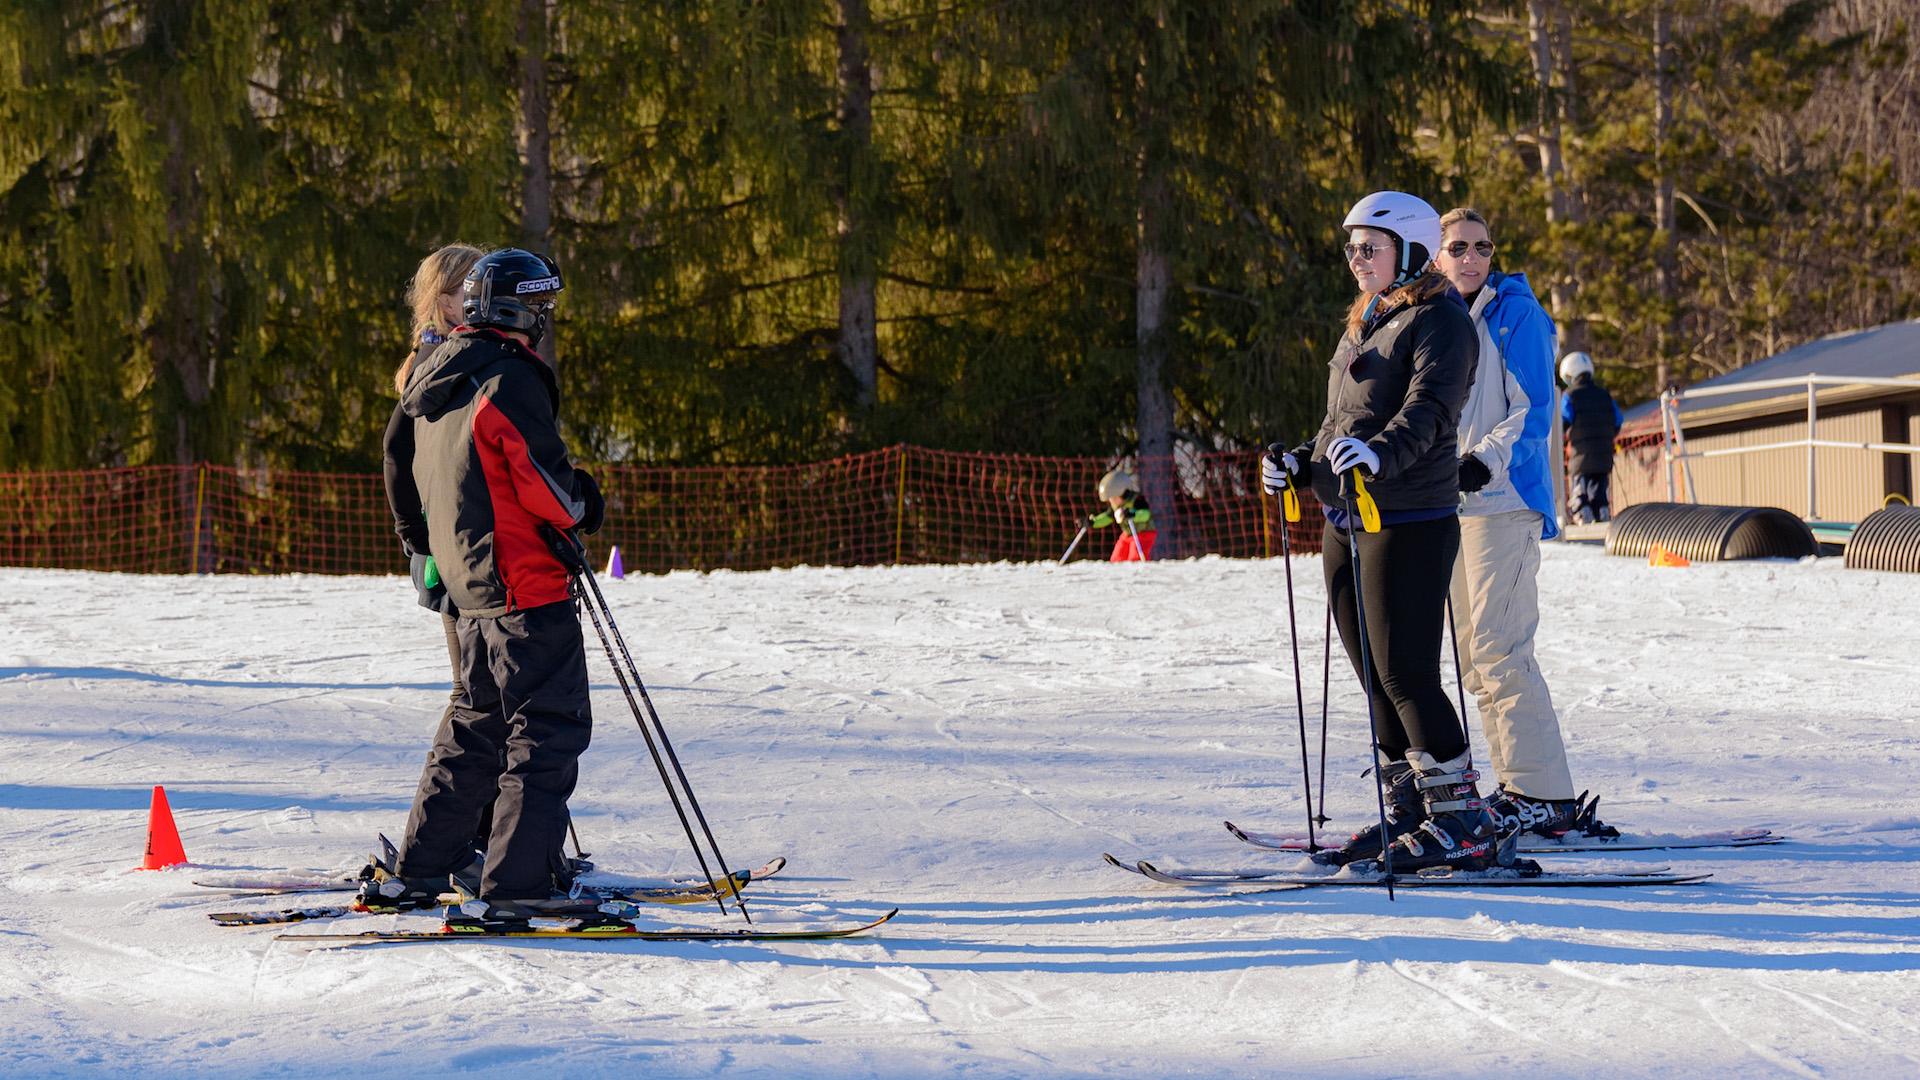 Group Lessons at Snow Trails